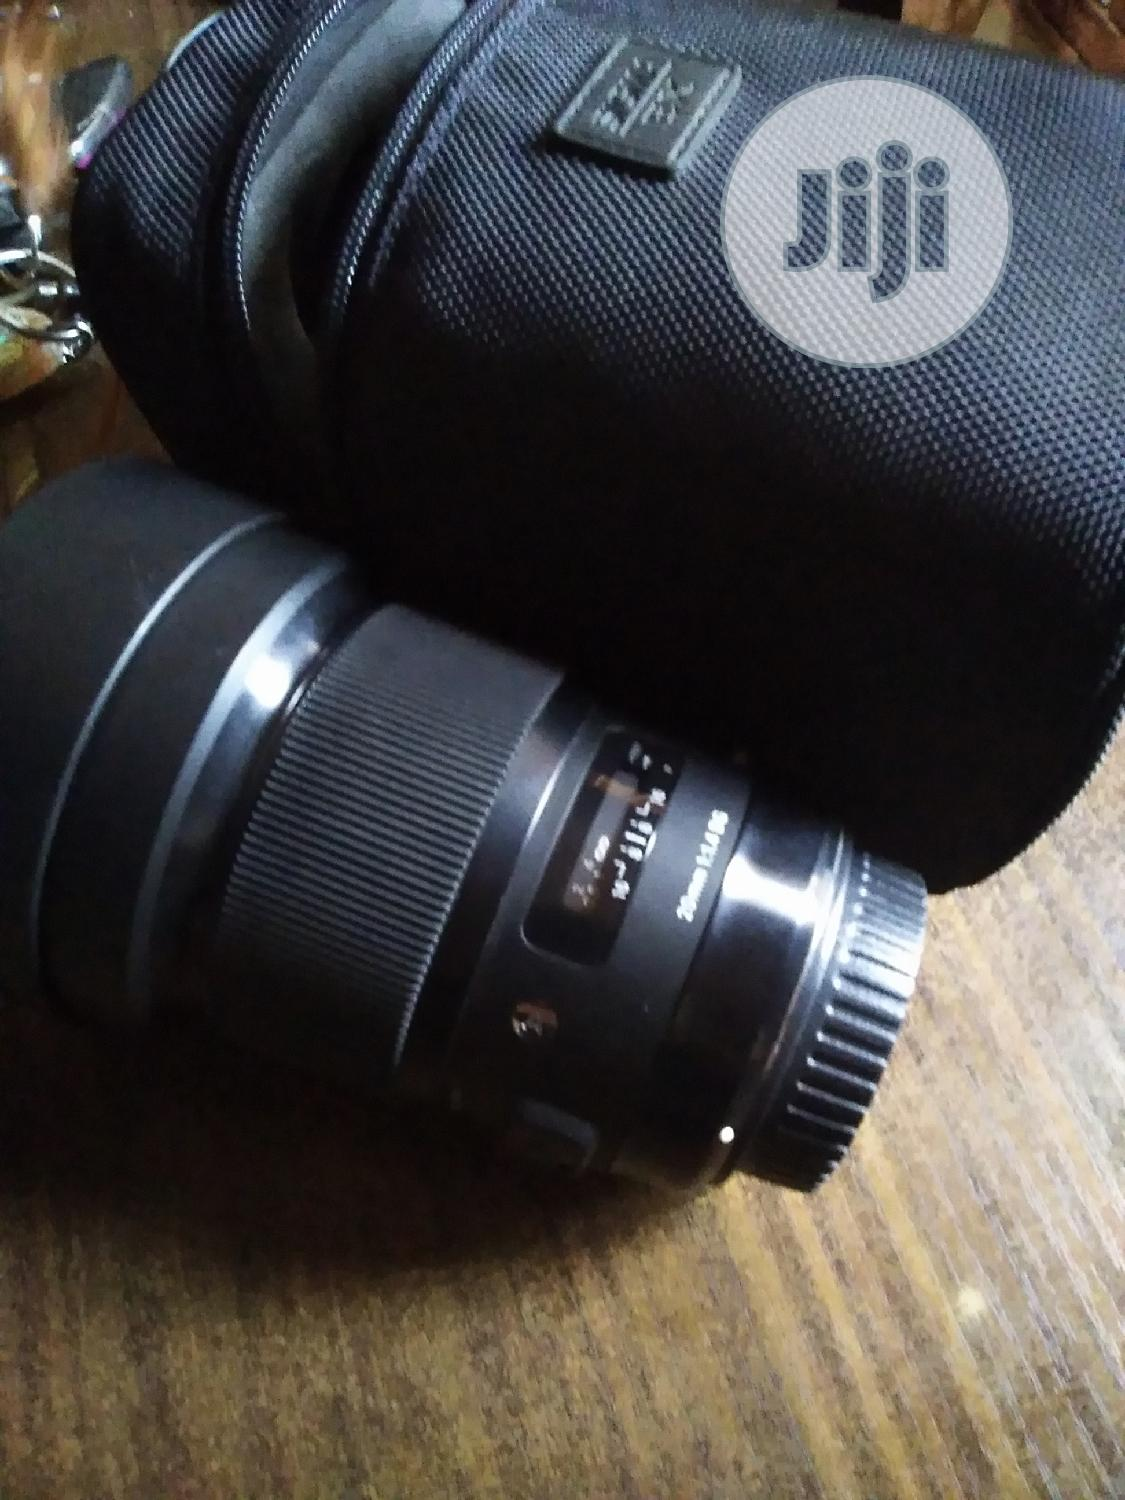 20mm Sigma Art Lens 1.4 For Canon | Accessories & Supplies for Electronics for sale in Alimosho, Lagos State, Nigeria